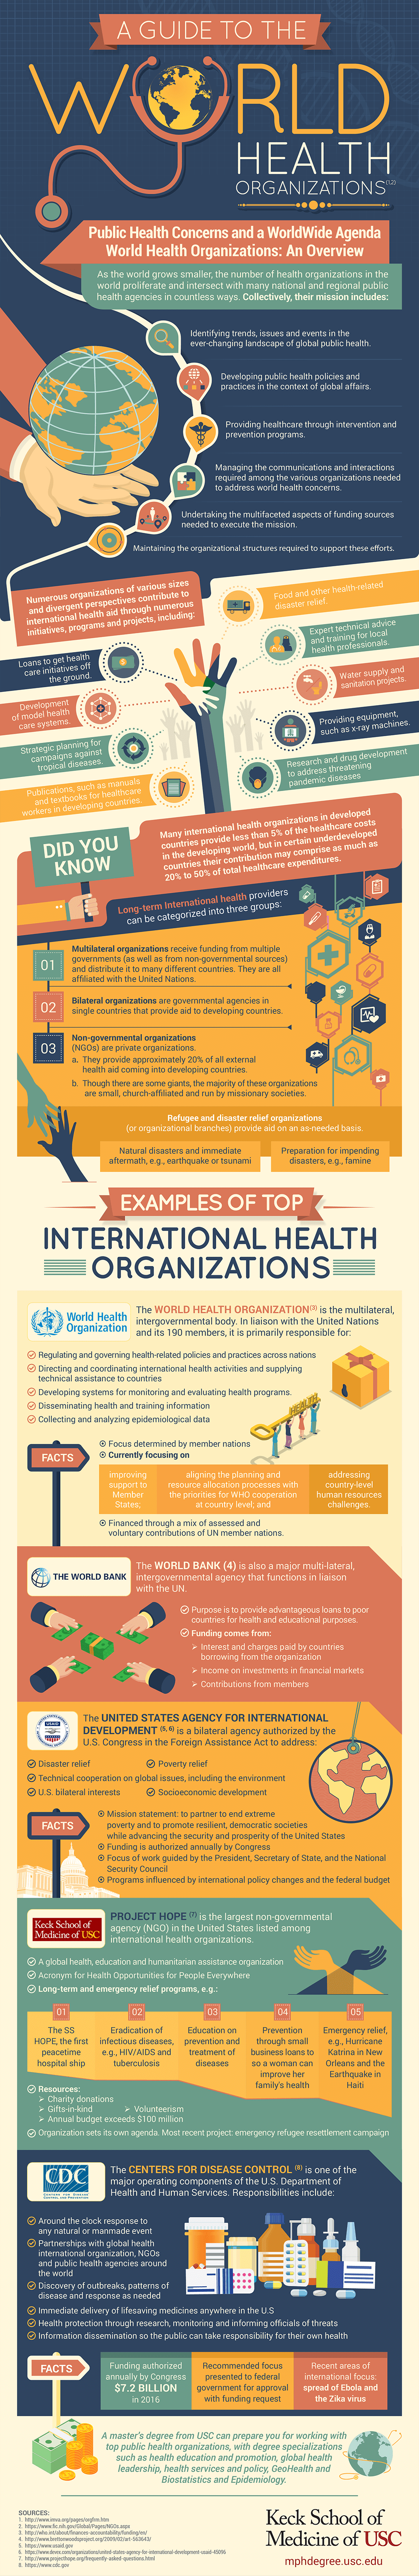 An infographic about the worlds health organizations by Keck School of Medicine of USC